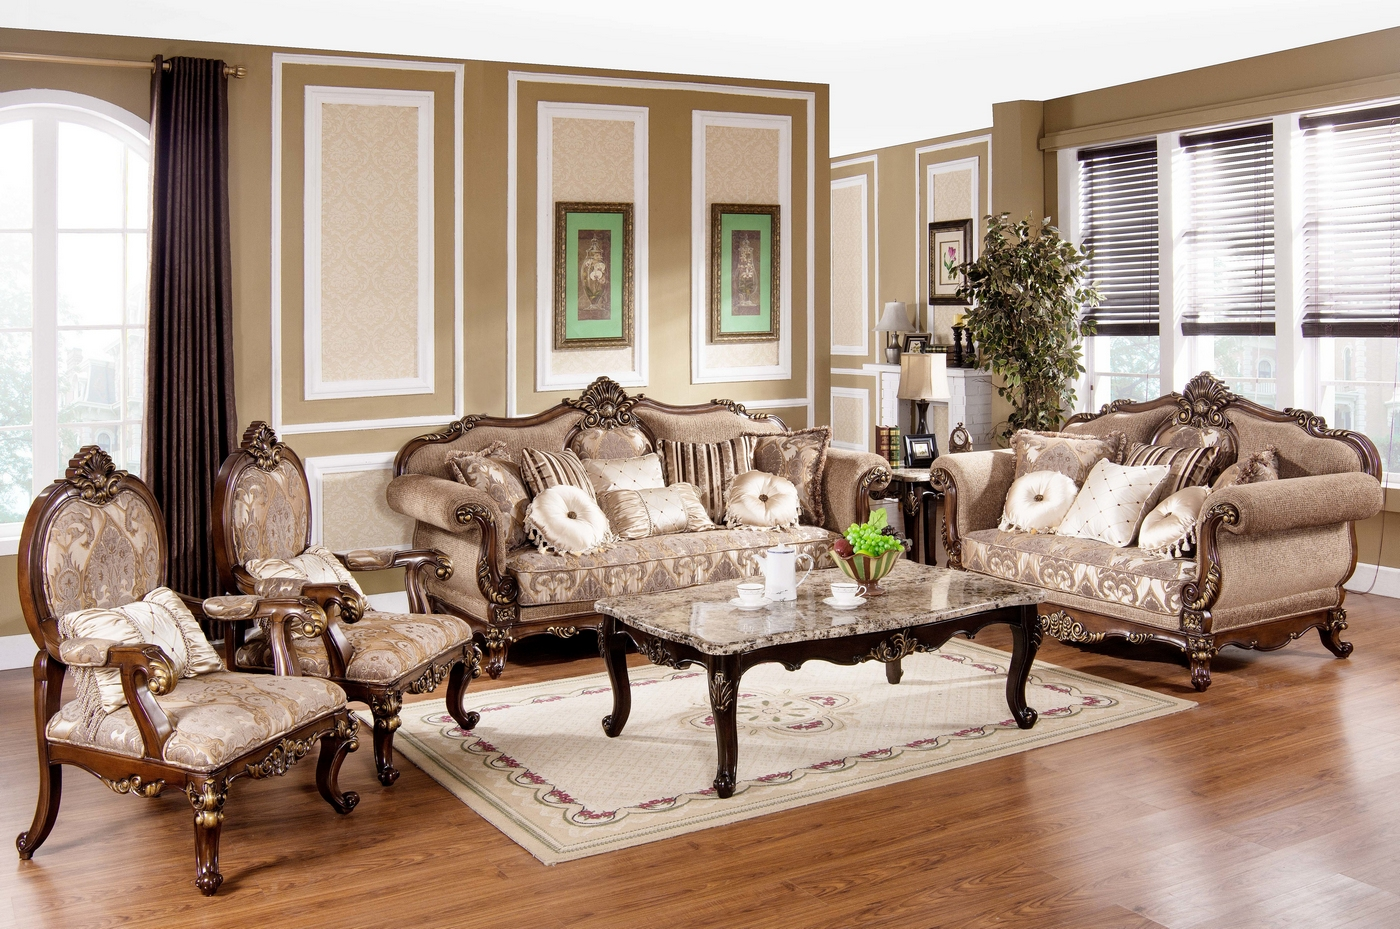 tuscan villa traditional formal sofa set. Black Bedroom Furniture Sets. Home Design Ideas